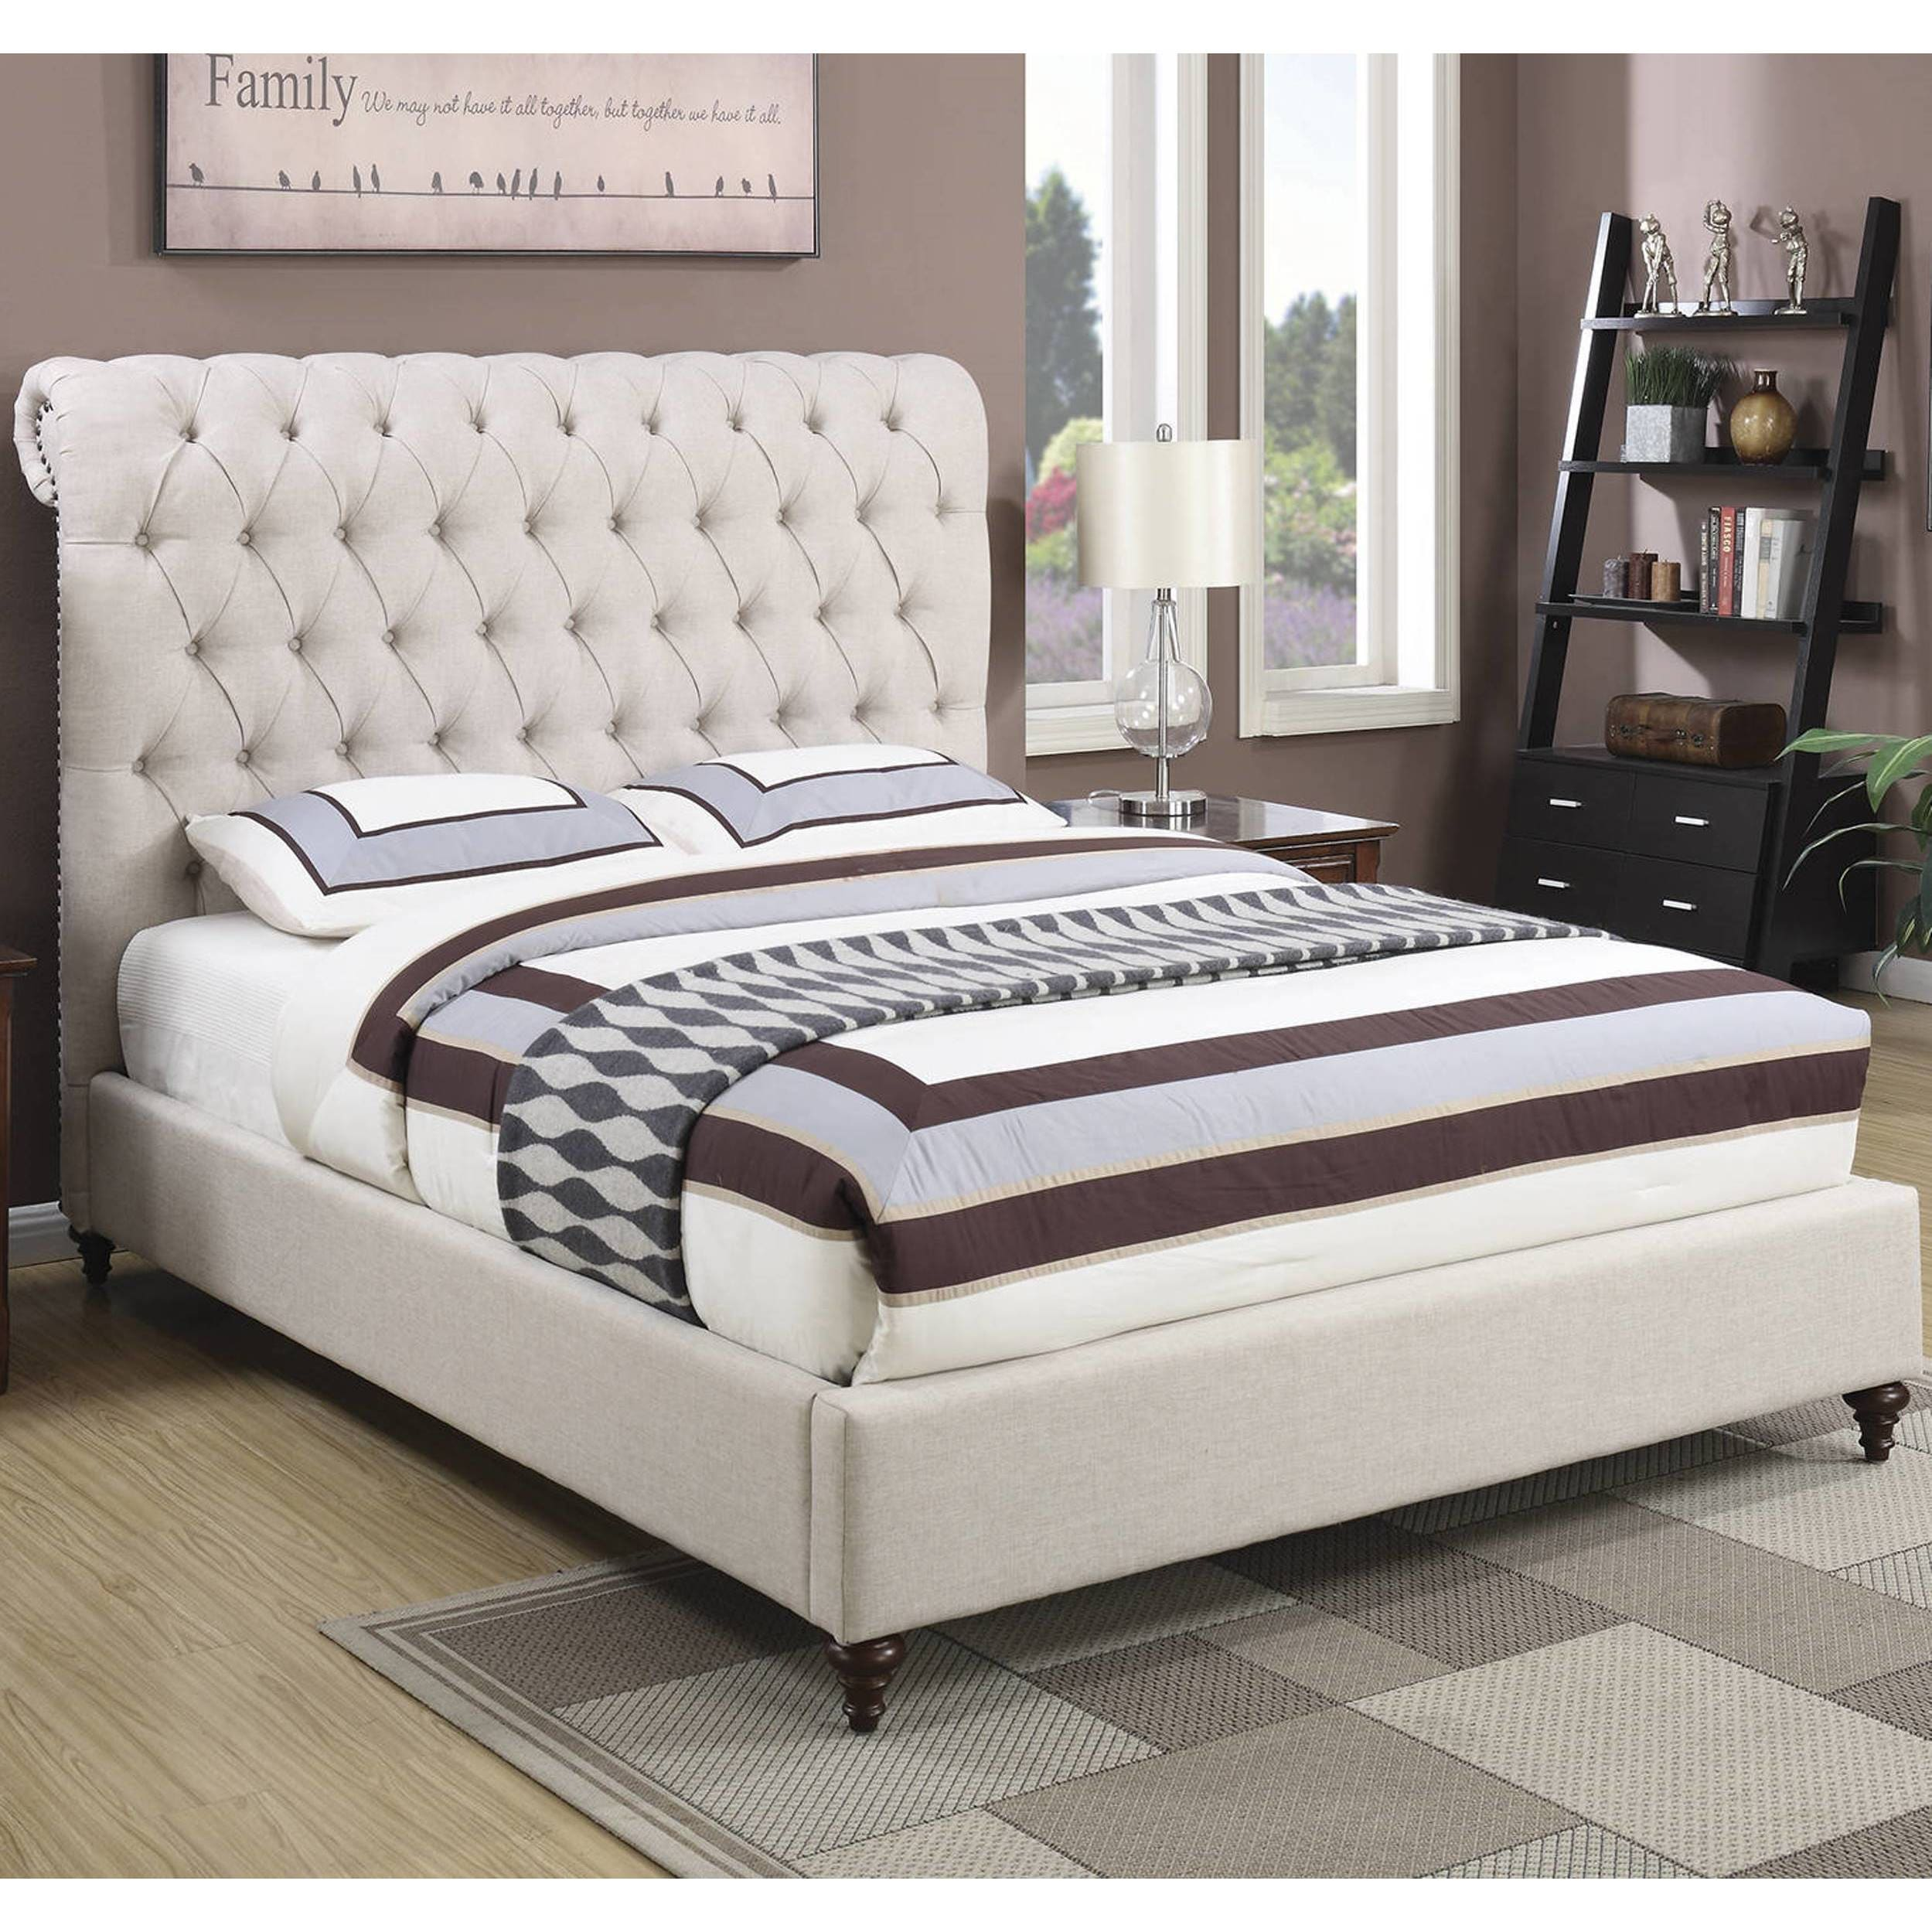 modern design upholstered bed with diamond button tufted headboard